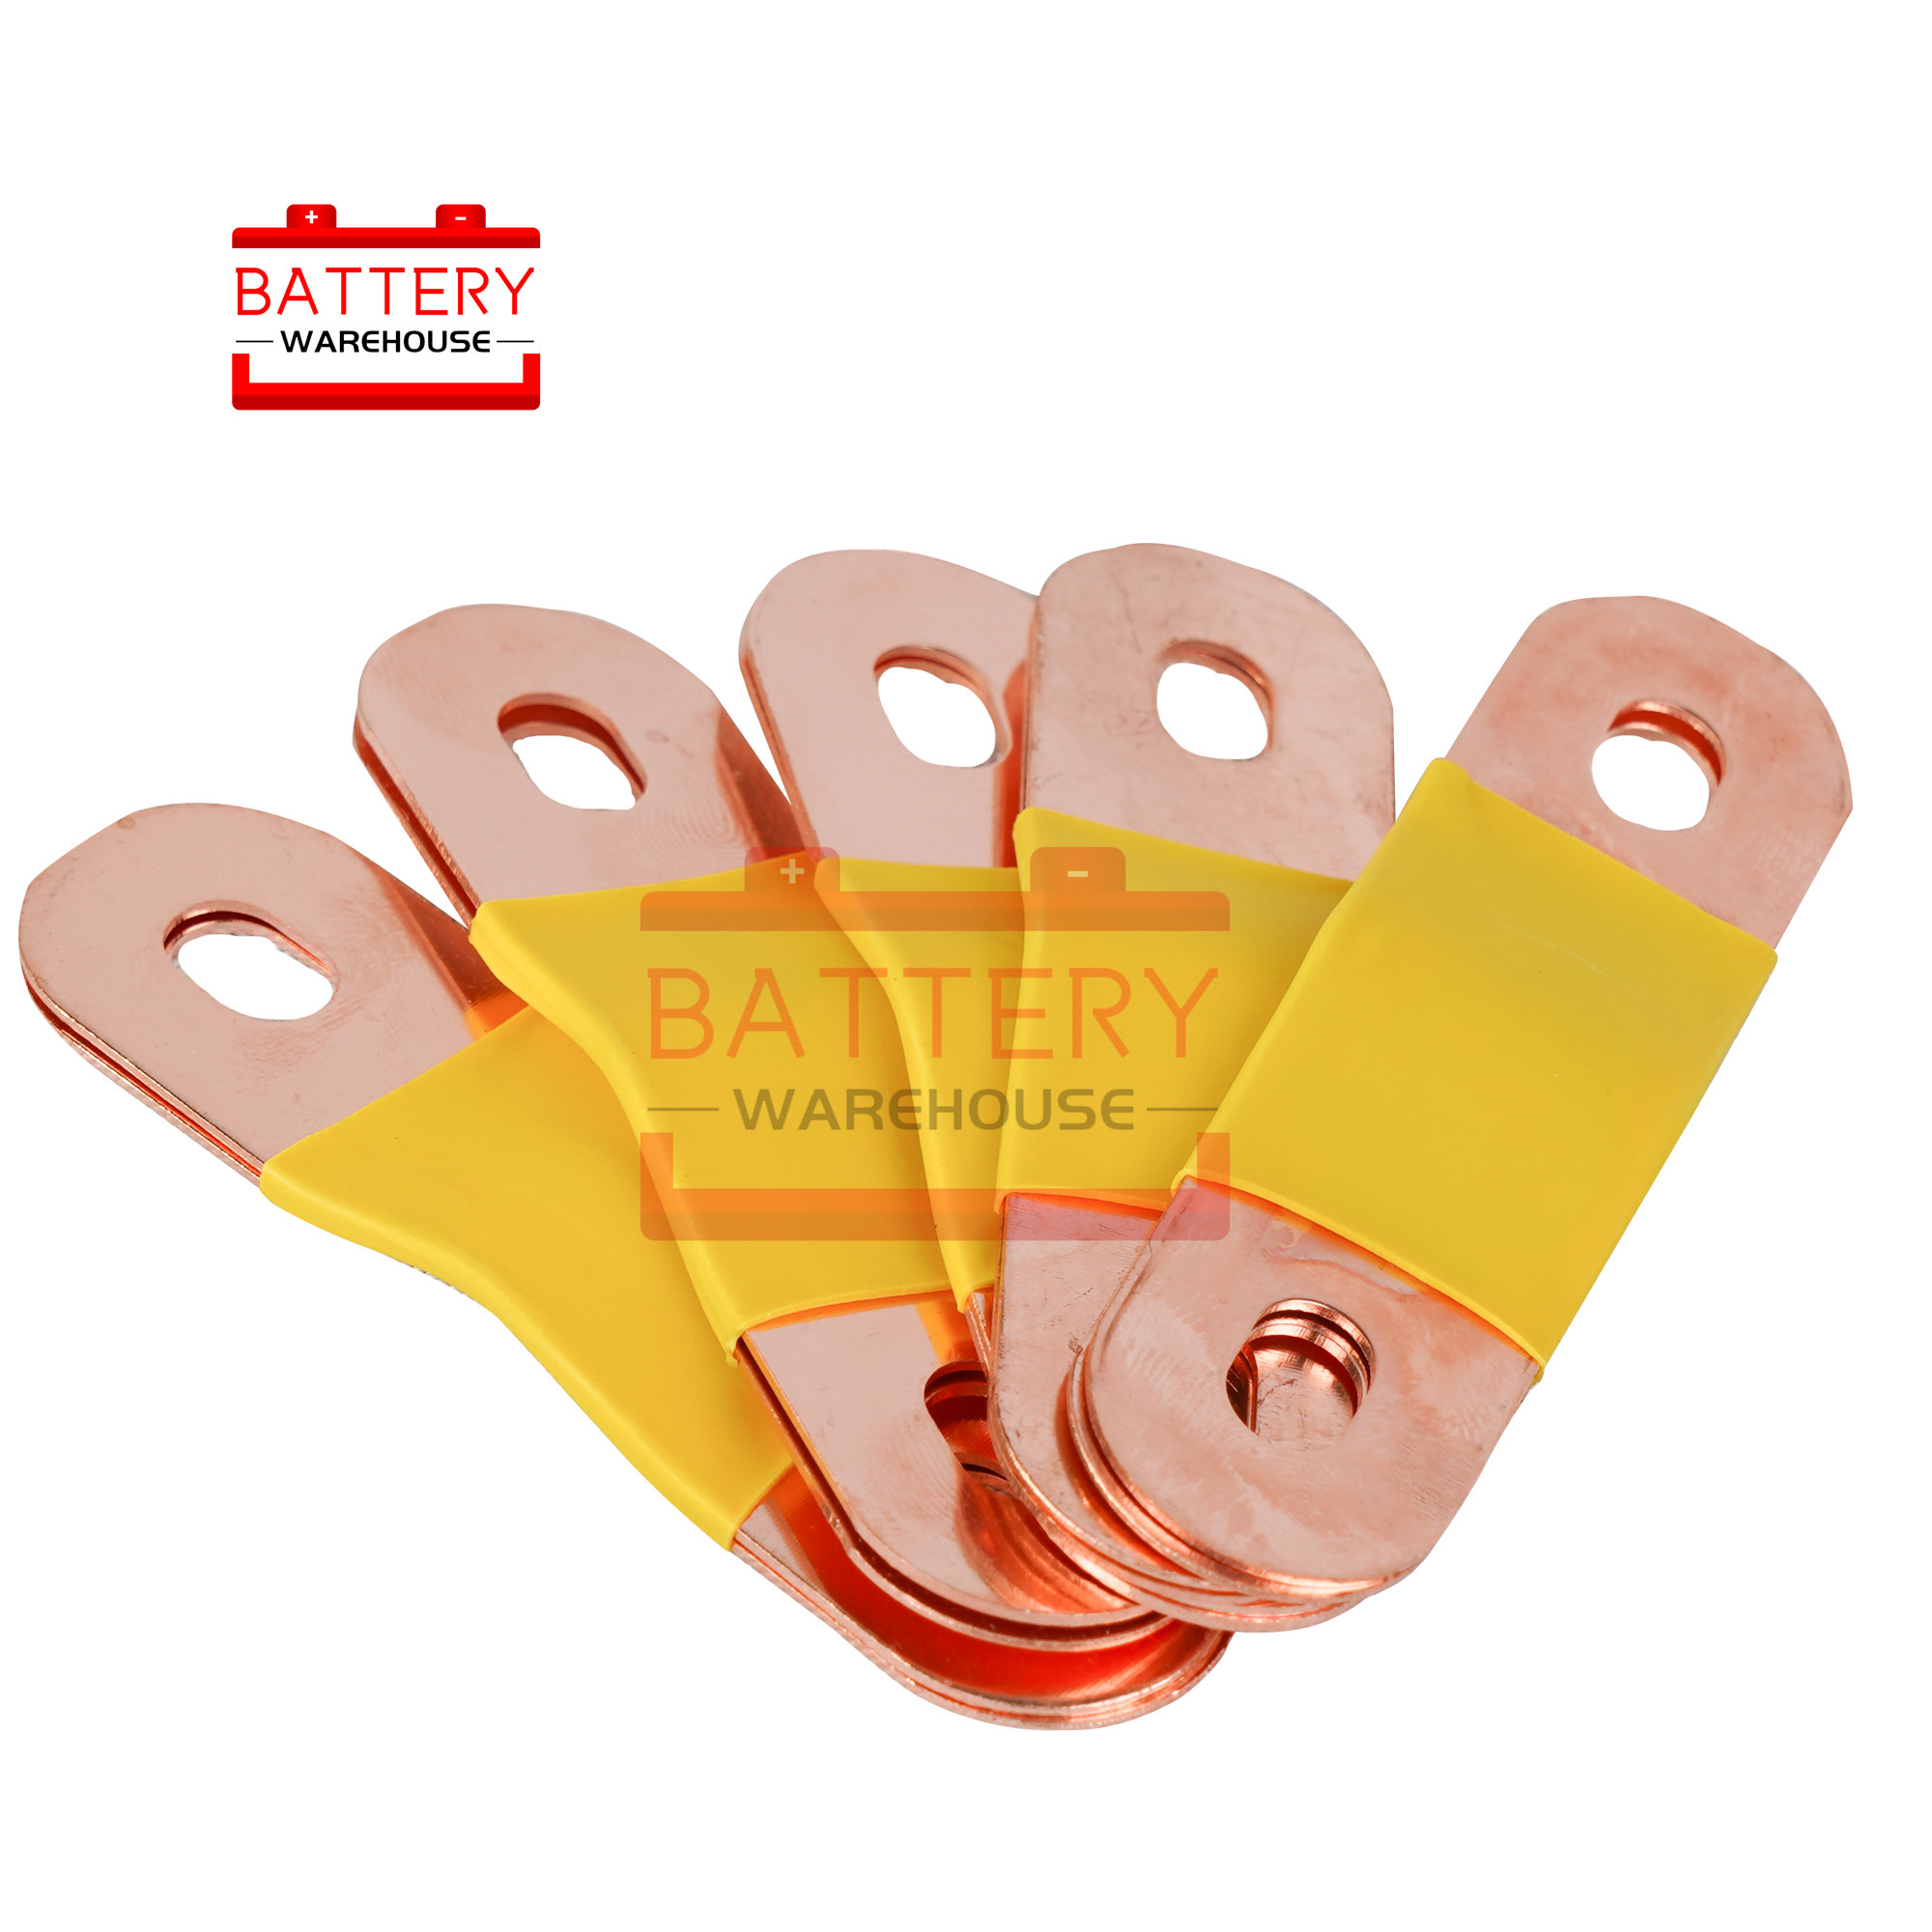 Copper Bus Bar cell to cell For <font><b>lithium</b></font> 3.7V CATL 3.2V 3.7V <font><b>12V</b></font> 24v 48V lifepo4 <font><b>battery</b></font> <font><b>100AH</b></font> 120AH 150AH 200AH 300AH 400AH image